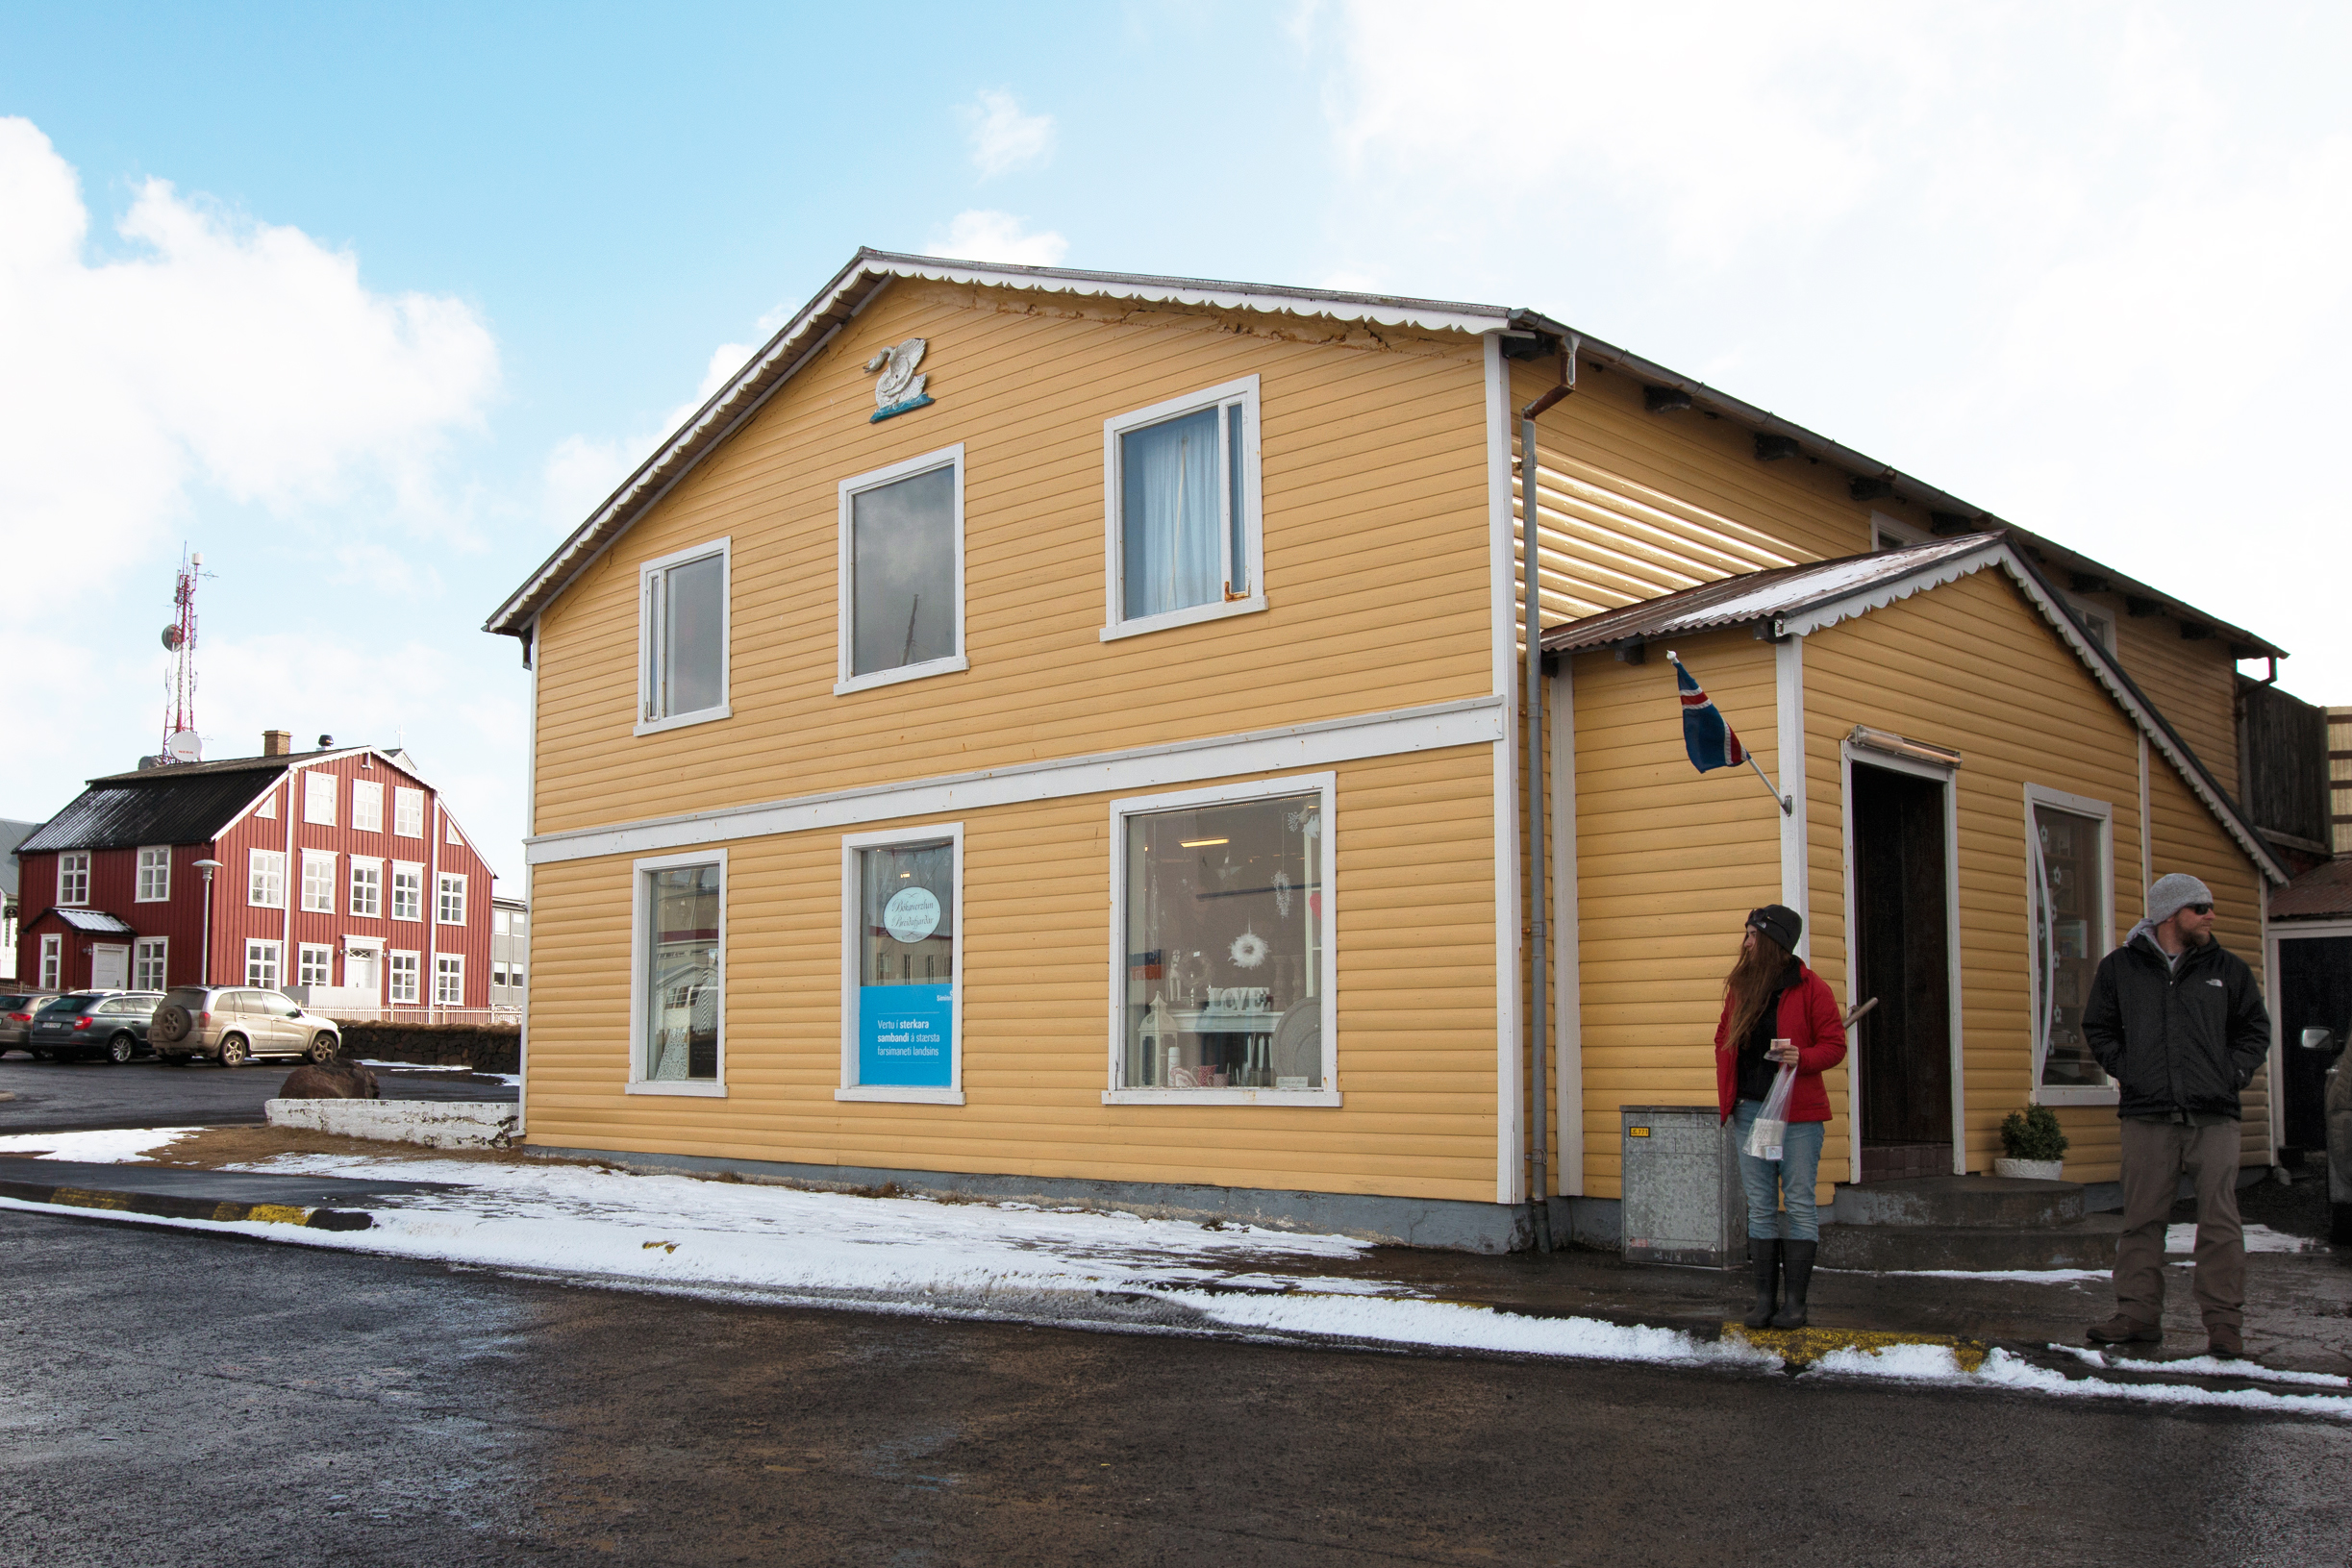 """This shop in Stykkishólmur served as the karaoke bar in """"The Secret Life of Walter Mitty"""" where Kristin Wiig sings Space Oddity to Ben Stiller as he jumps into a departing helicopter."""